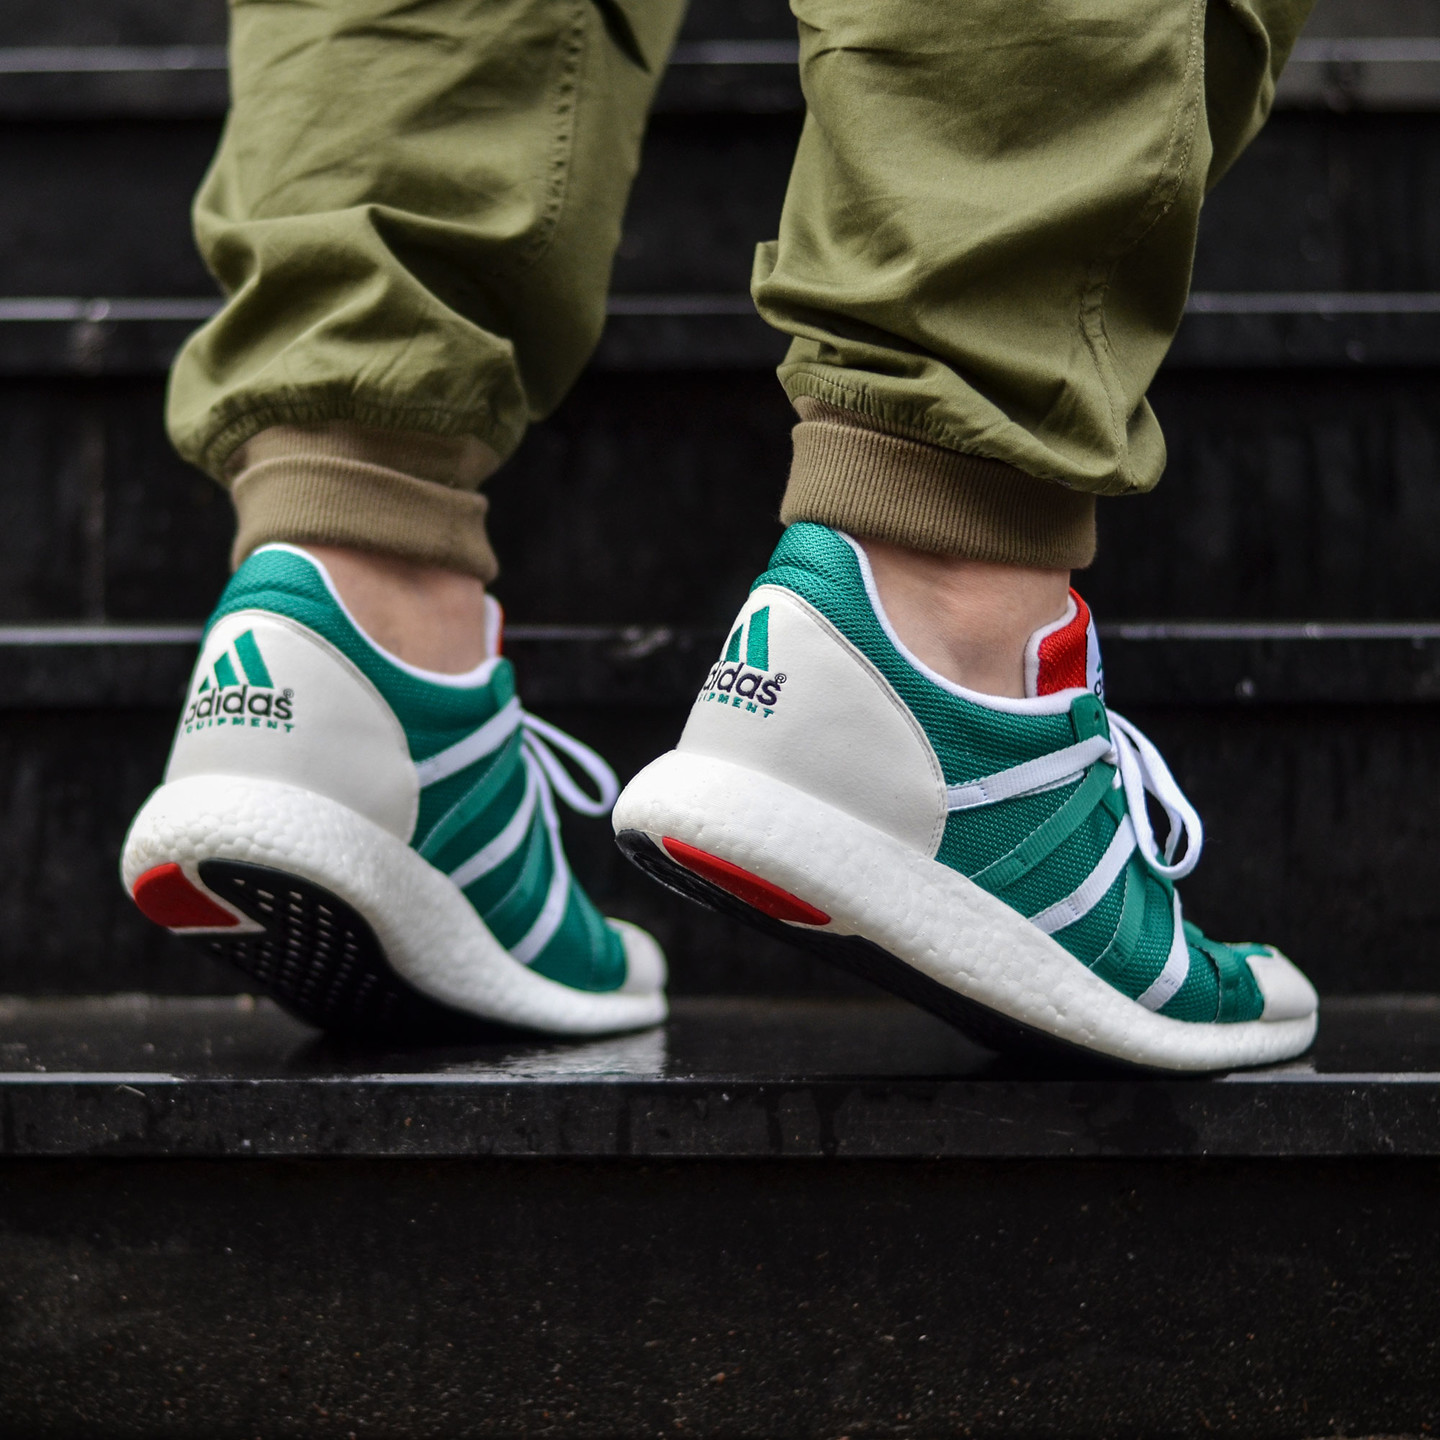 Adidas Equipment Racing 93/16 Sub Green / Ftw White / Col Red S79122-42